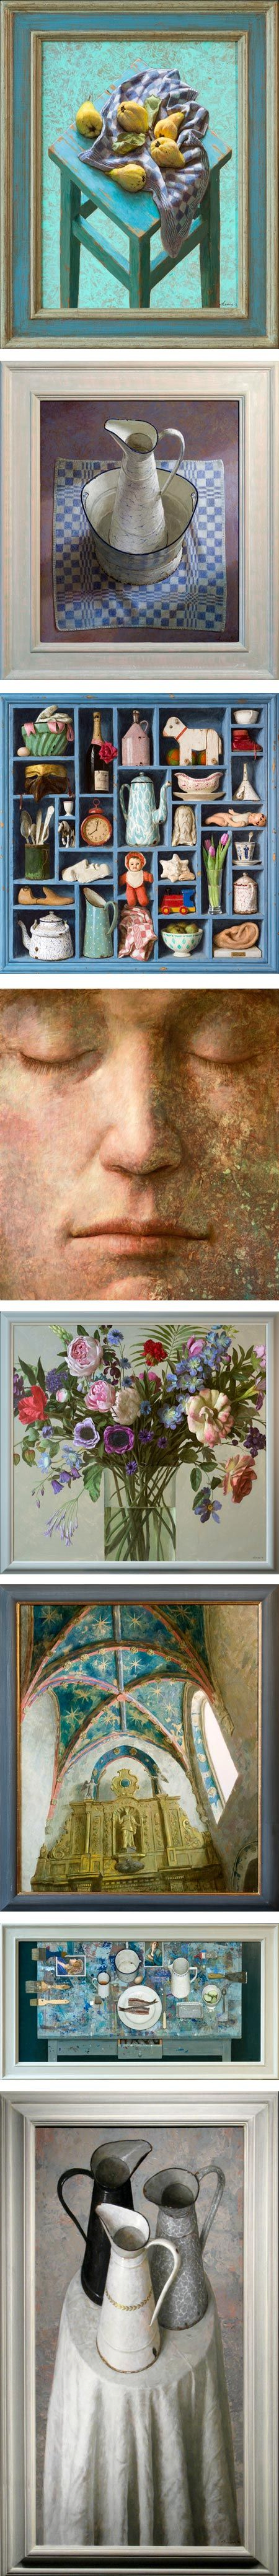 Kenne Gregoire is a Dutch painter who is showing his work in the U.S. for the first time in an exhibition that opens today at the Arcadia Gallery in New York.